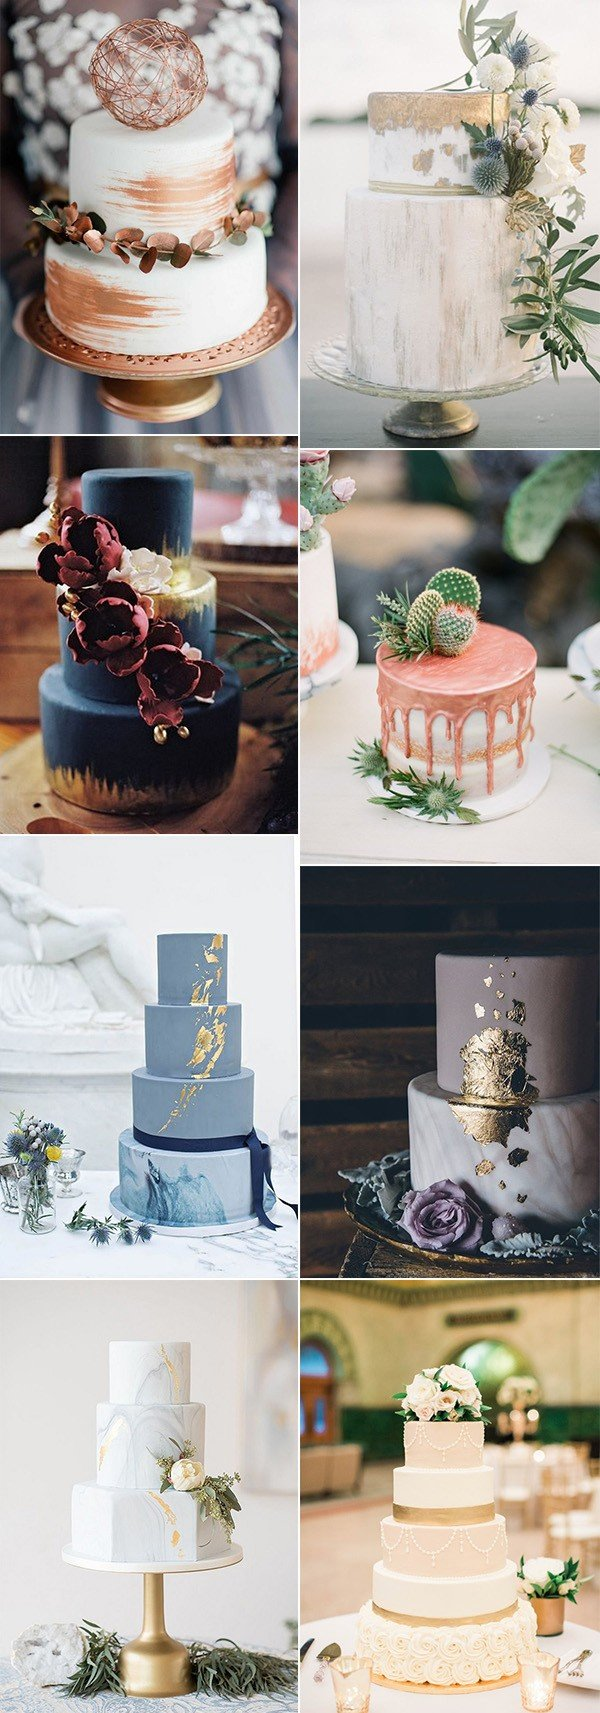 metallic wedding cake ideas